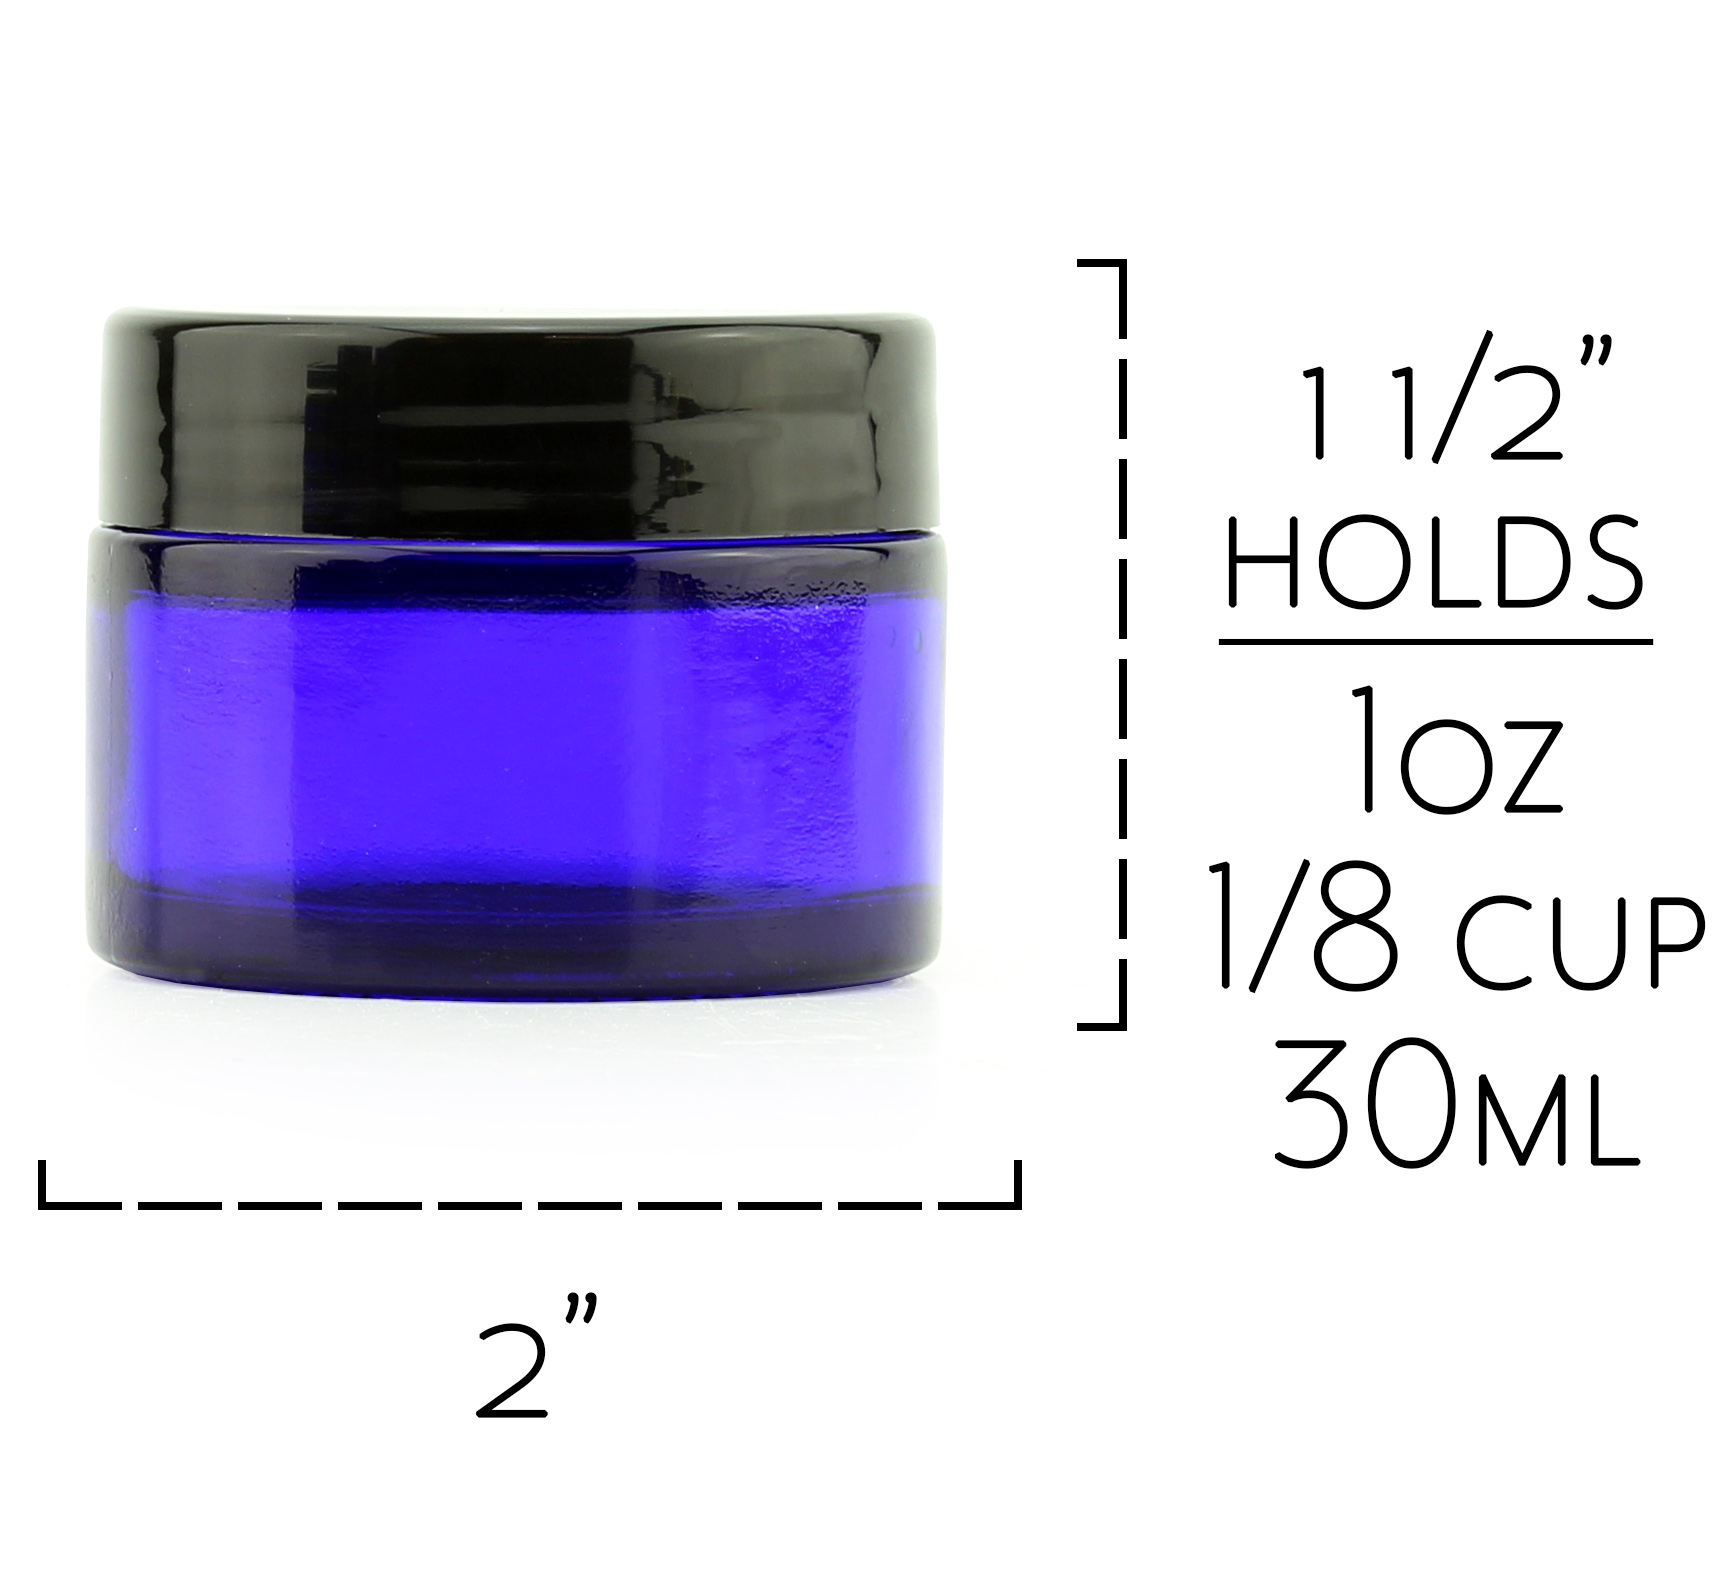 B018SFM042 - 1 oz Cobalt Jars Measuremen